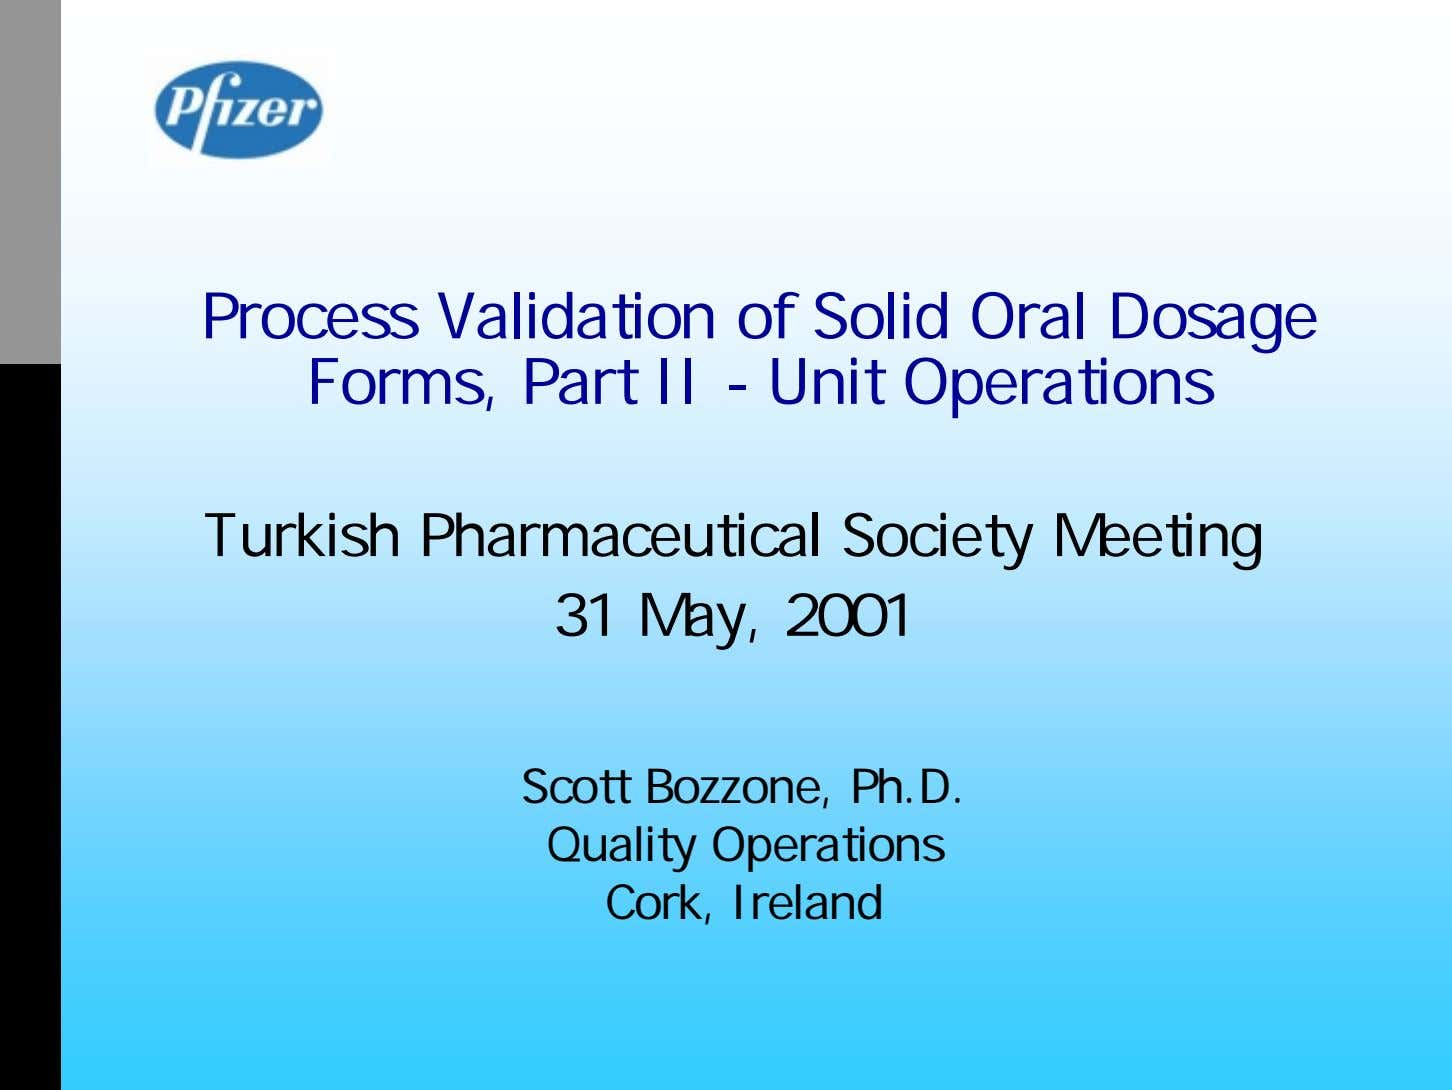 Process Validation of Solid Oral Dosage Forms, Part II - Unit Operations Turkish Pharmaceutical Society